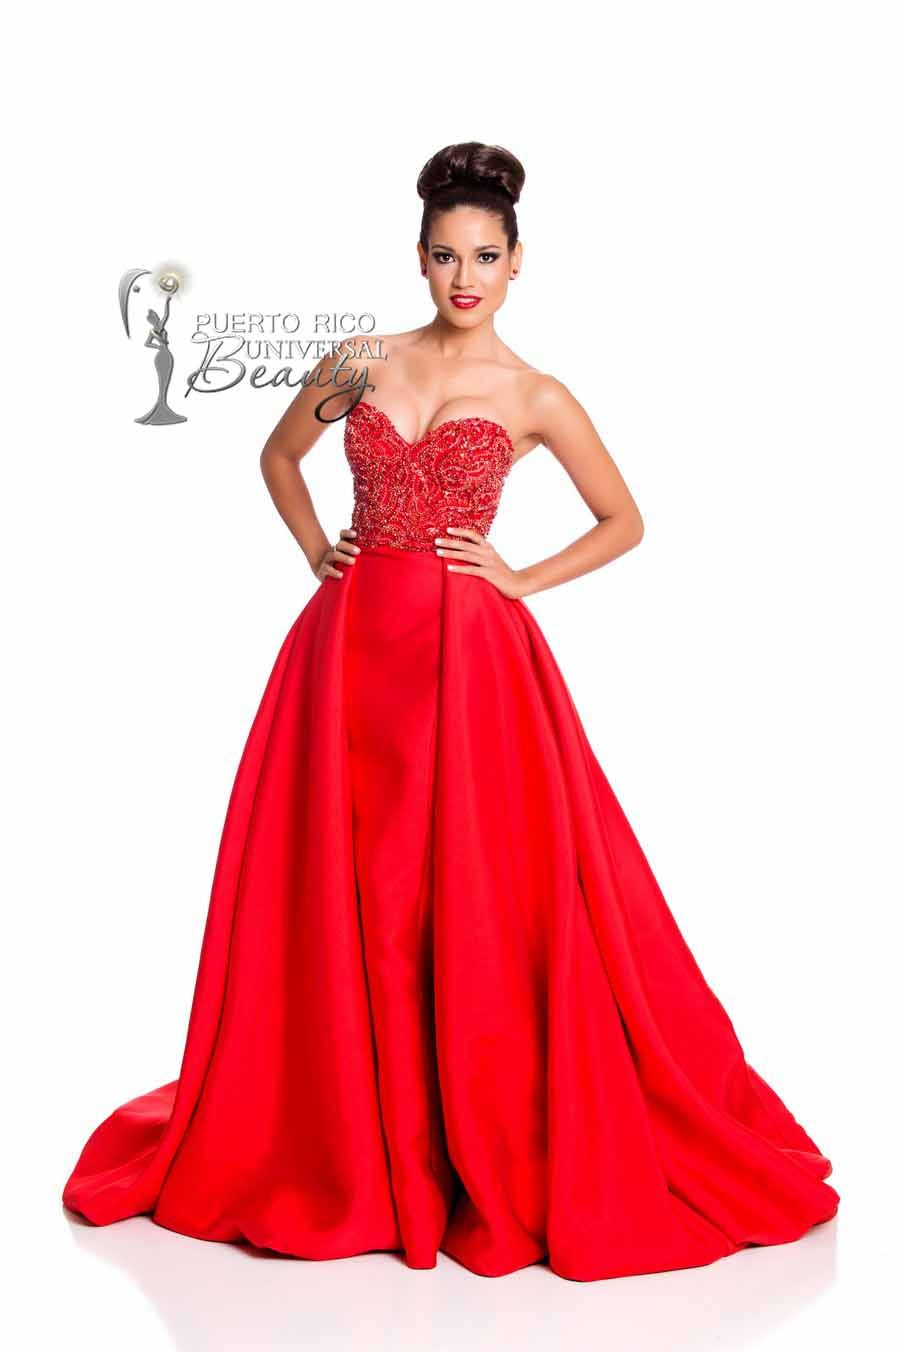 MISS UNIVERSE 2015 :: EVENING GOWN | Claudia Barrionuevo, Miss ...